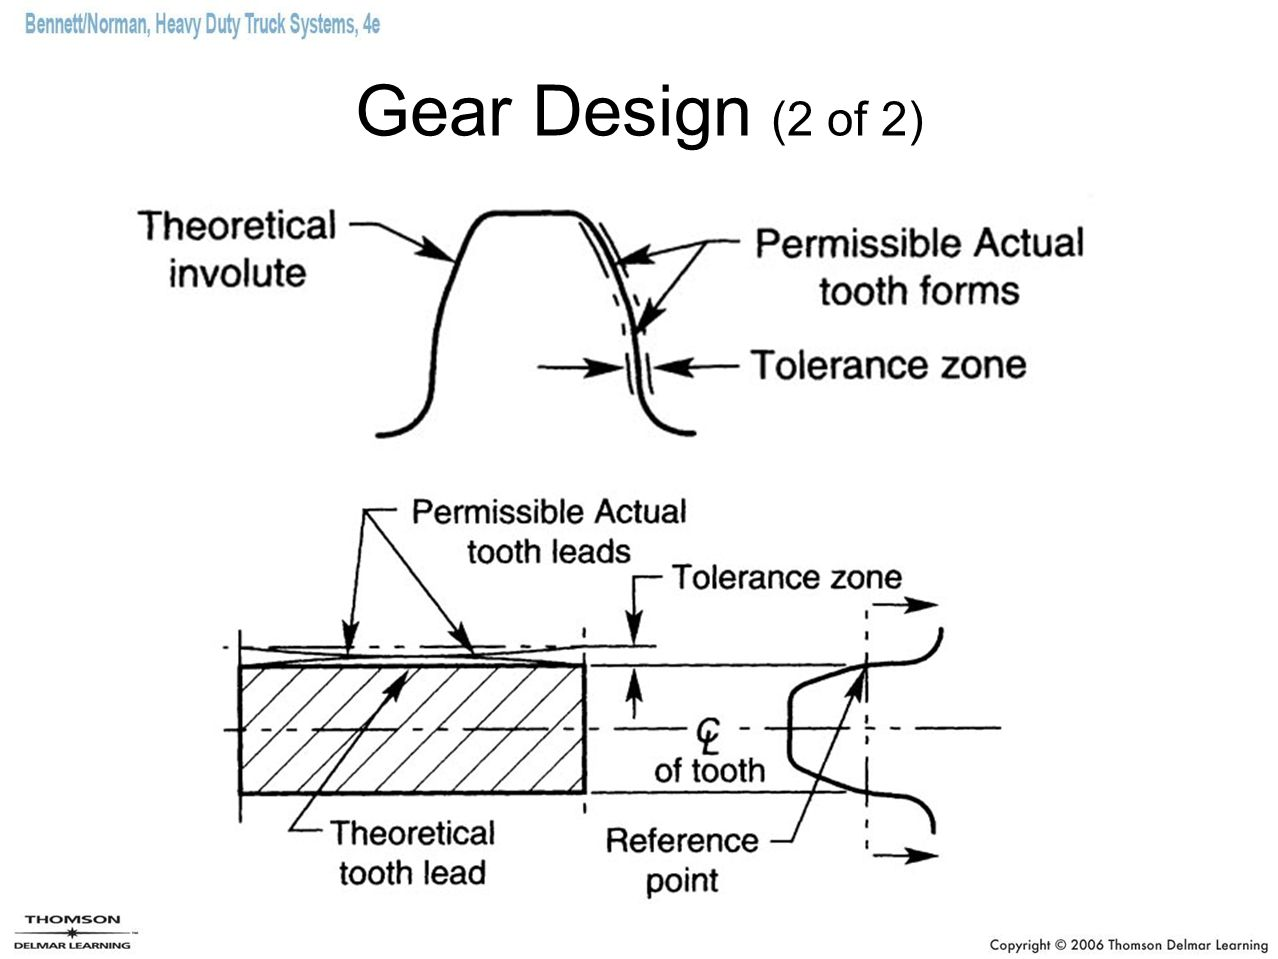 Gear Design (2 of 2)